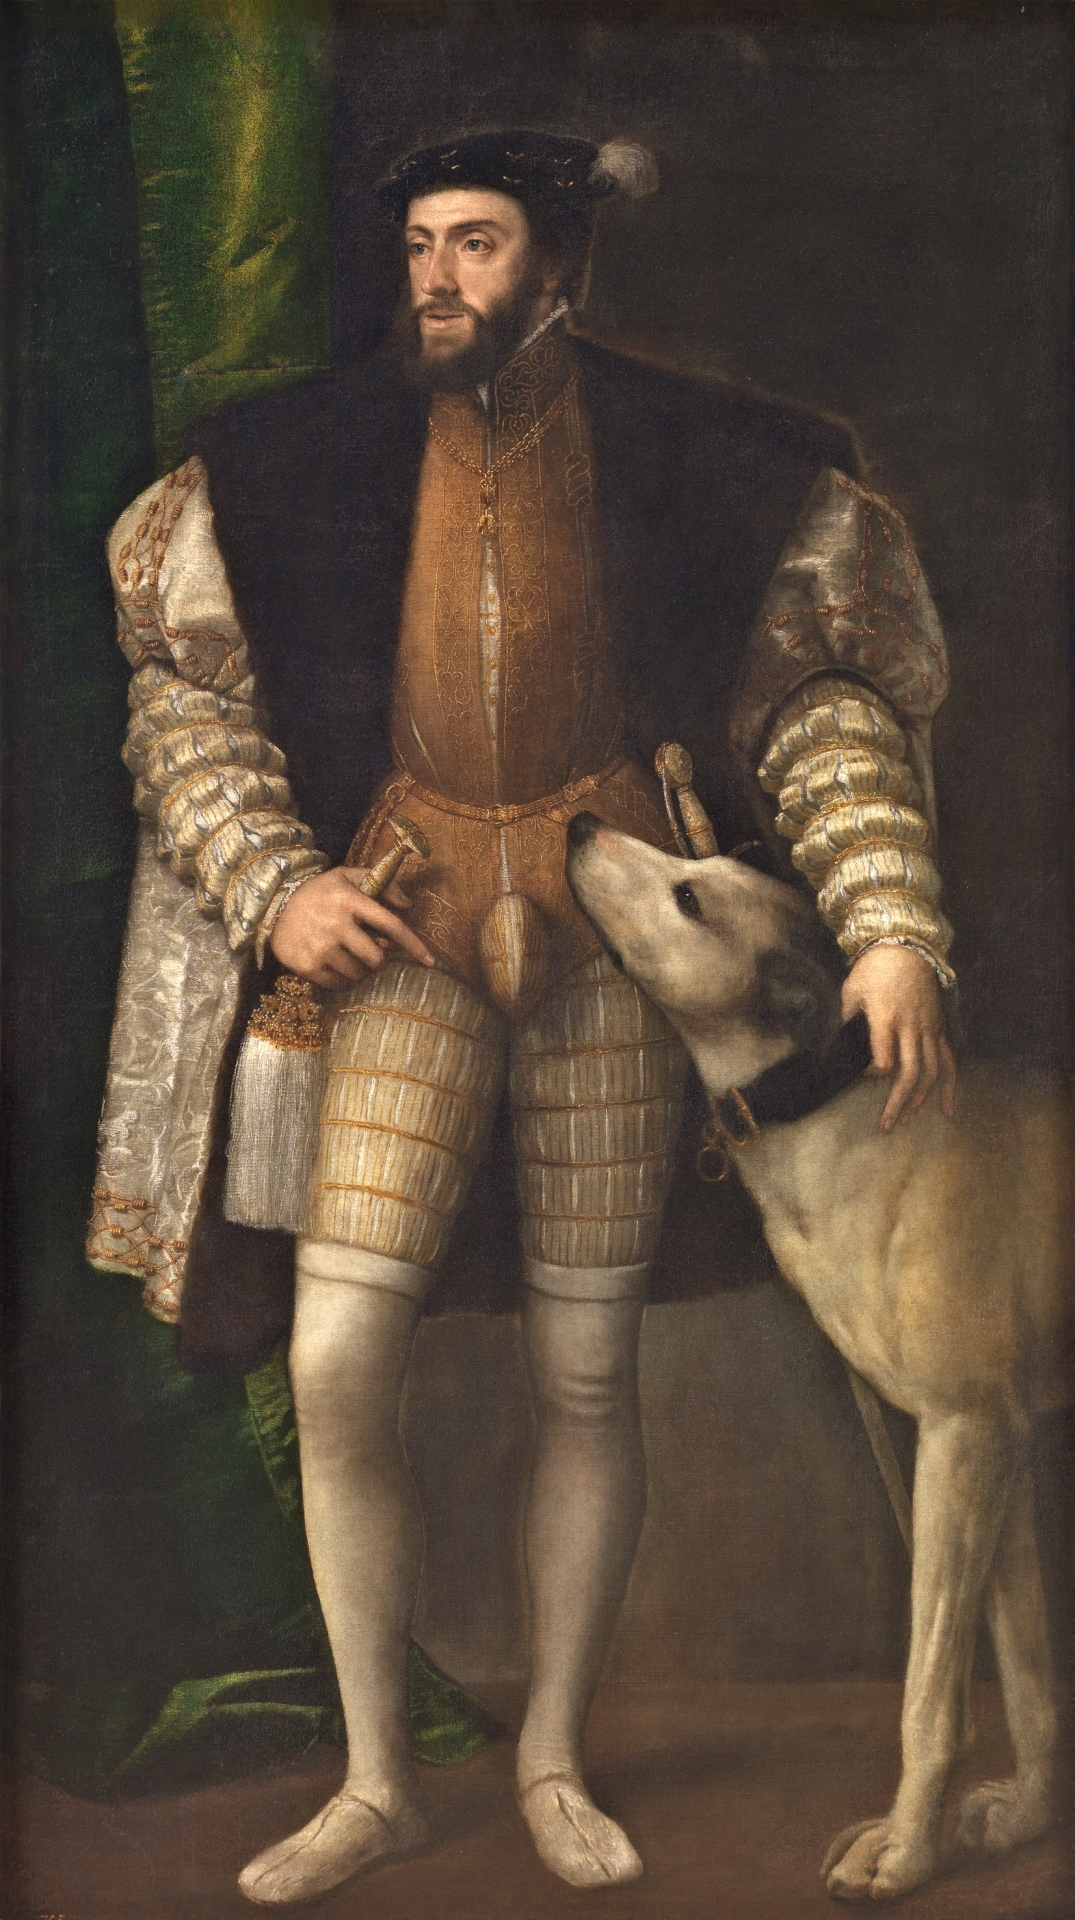 'The Emperor Charles V with a Dog,' Titian, 1533. Courtesy of Museo Nacional del Prado.